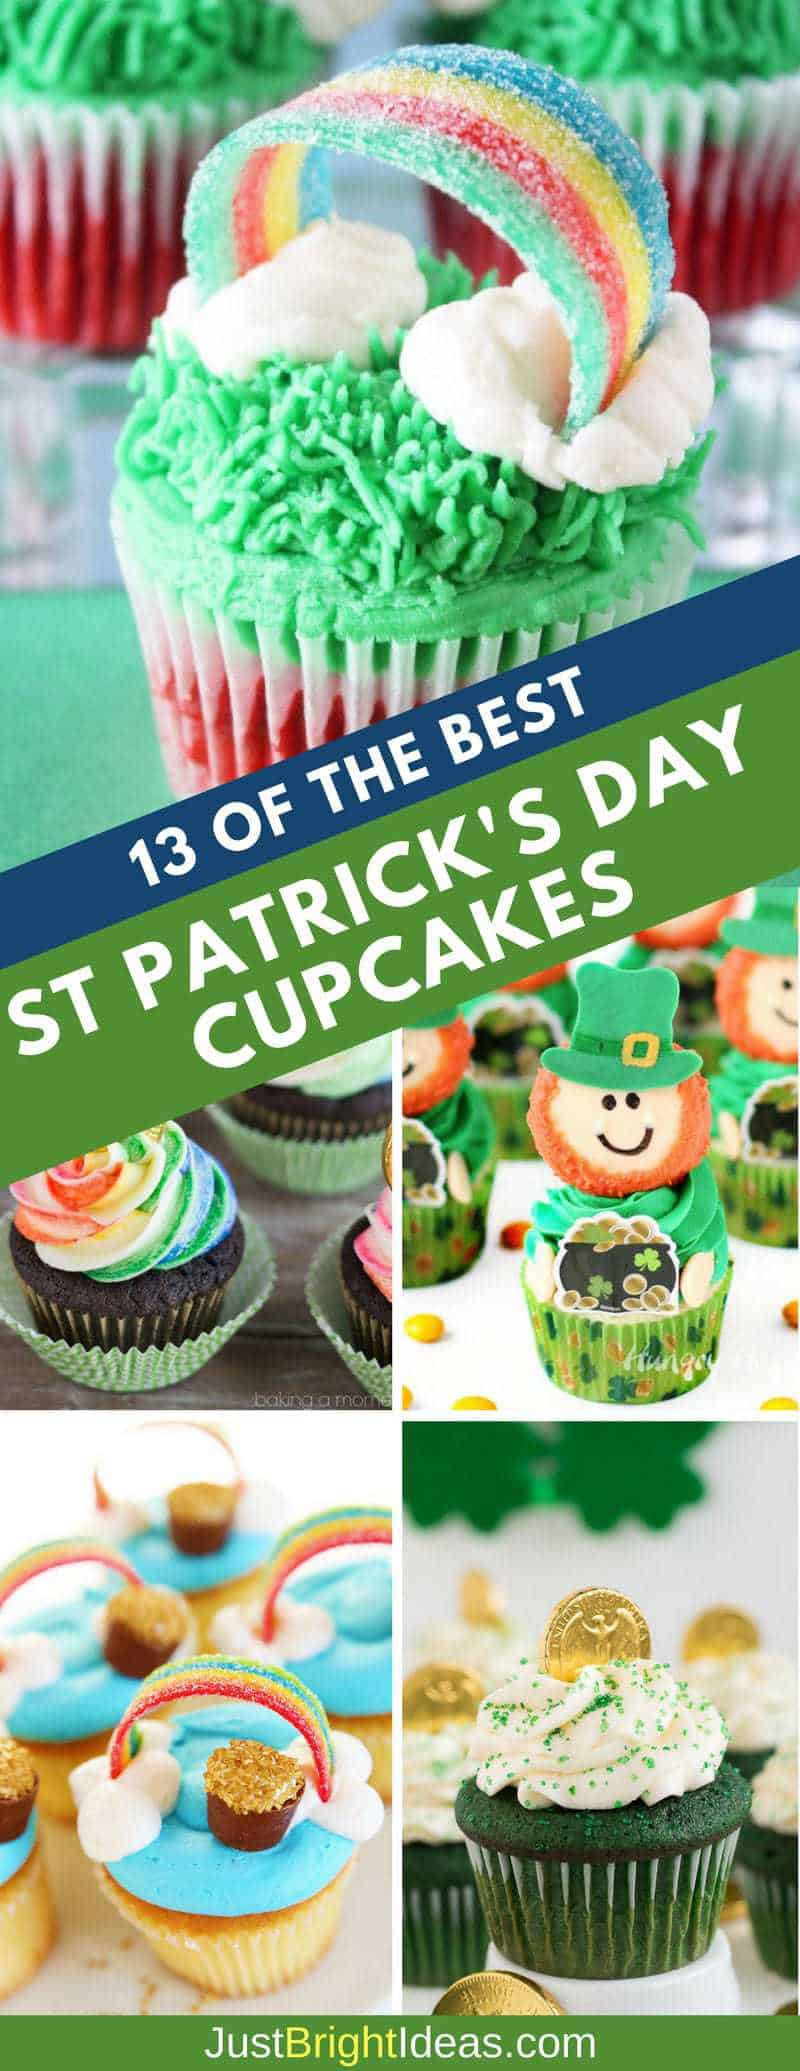 Easy to Make St Patricks Day Cupcakes Pinterest